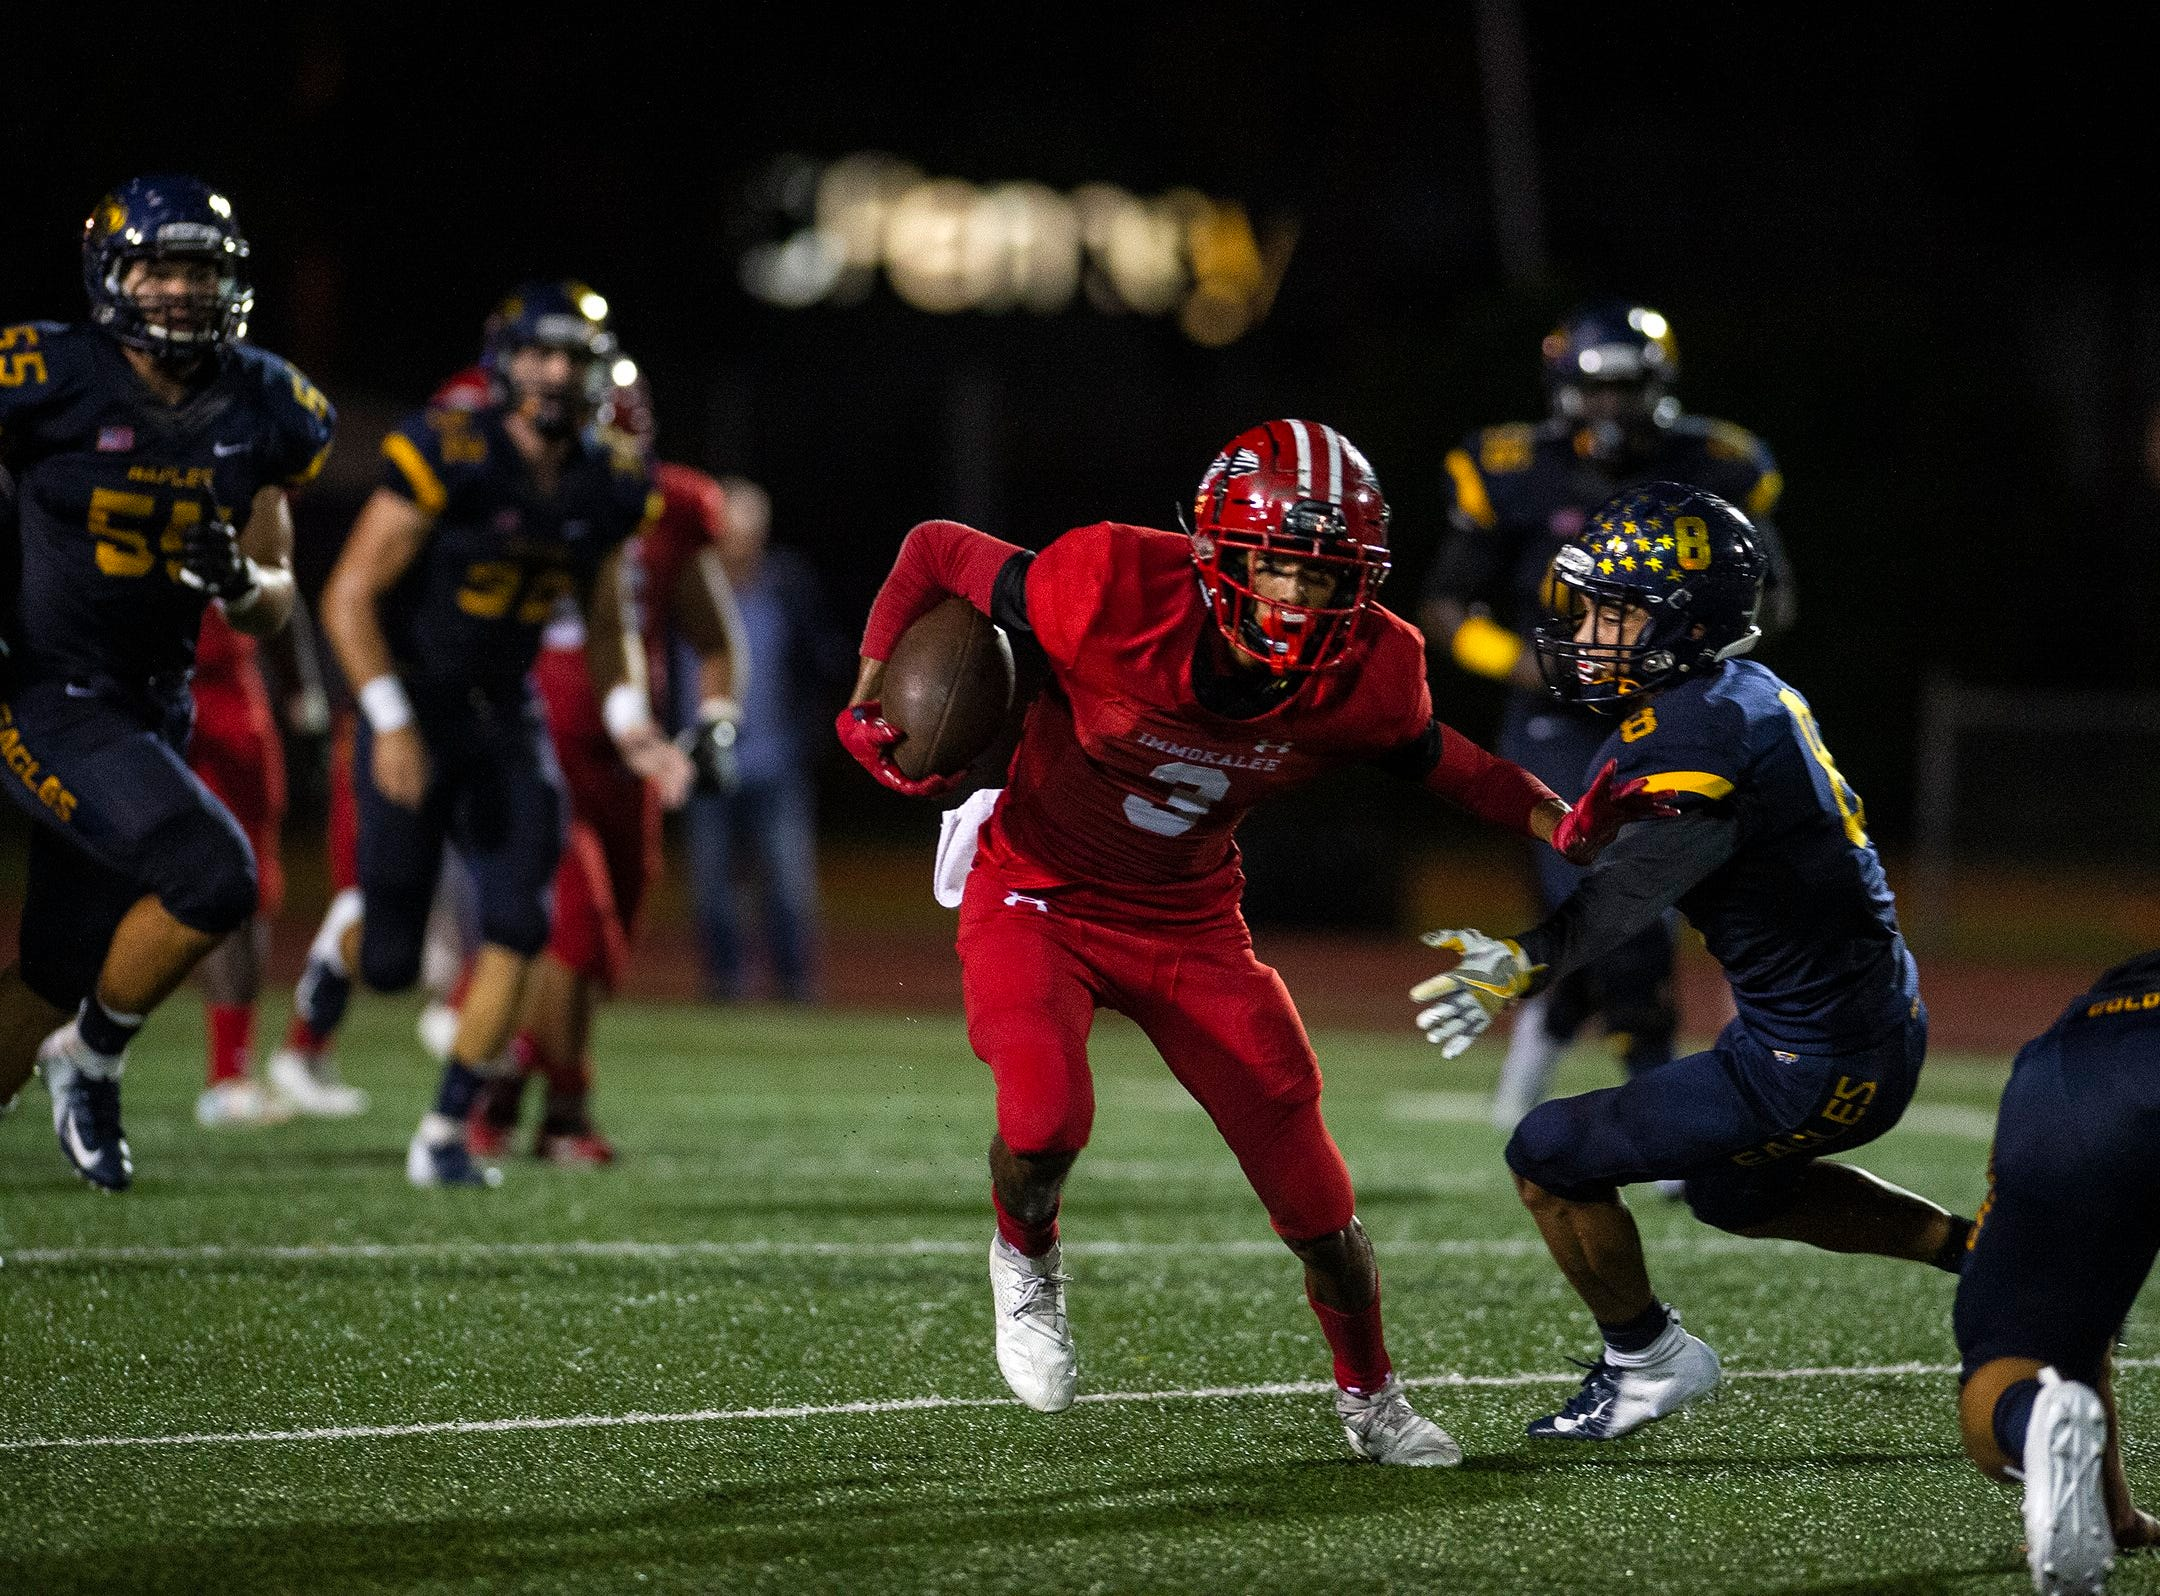 Immokalee High School's Jodeci Chappa pushes off Naples High School's Tre Smith(8) during a game against Naples High School in Naples, Fla. on Friday, September 21, 2018.